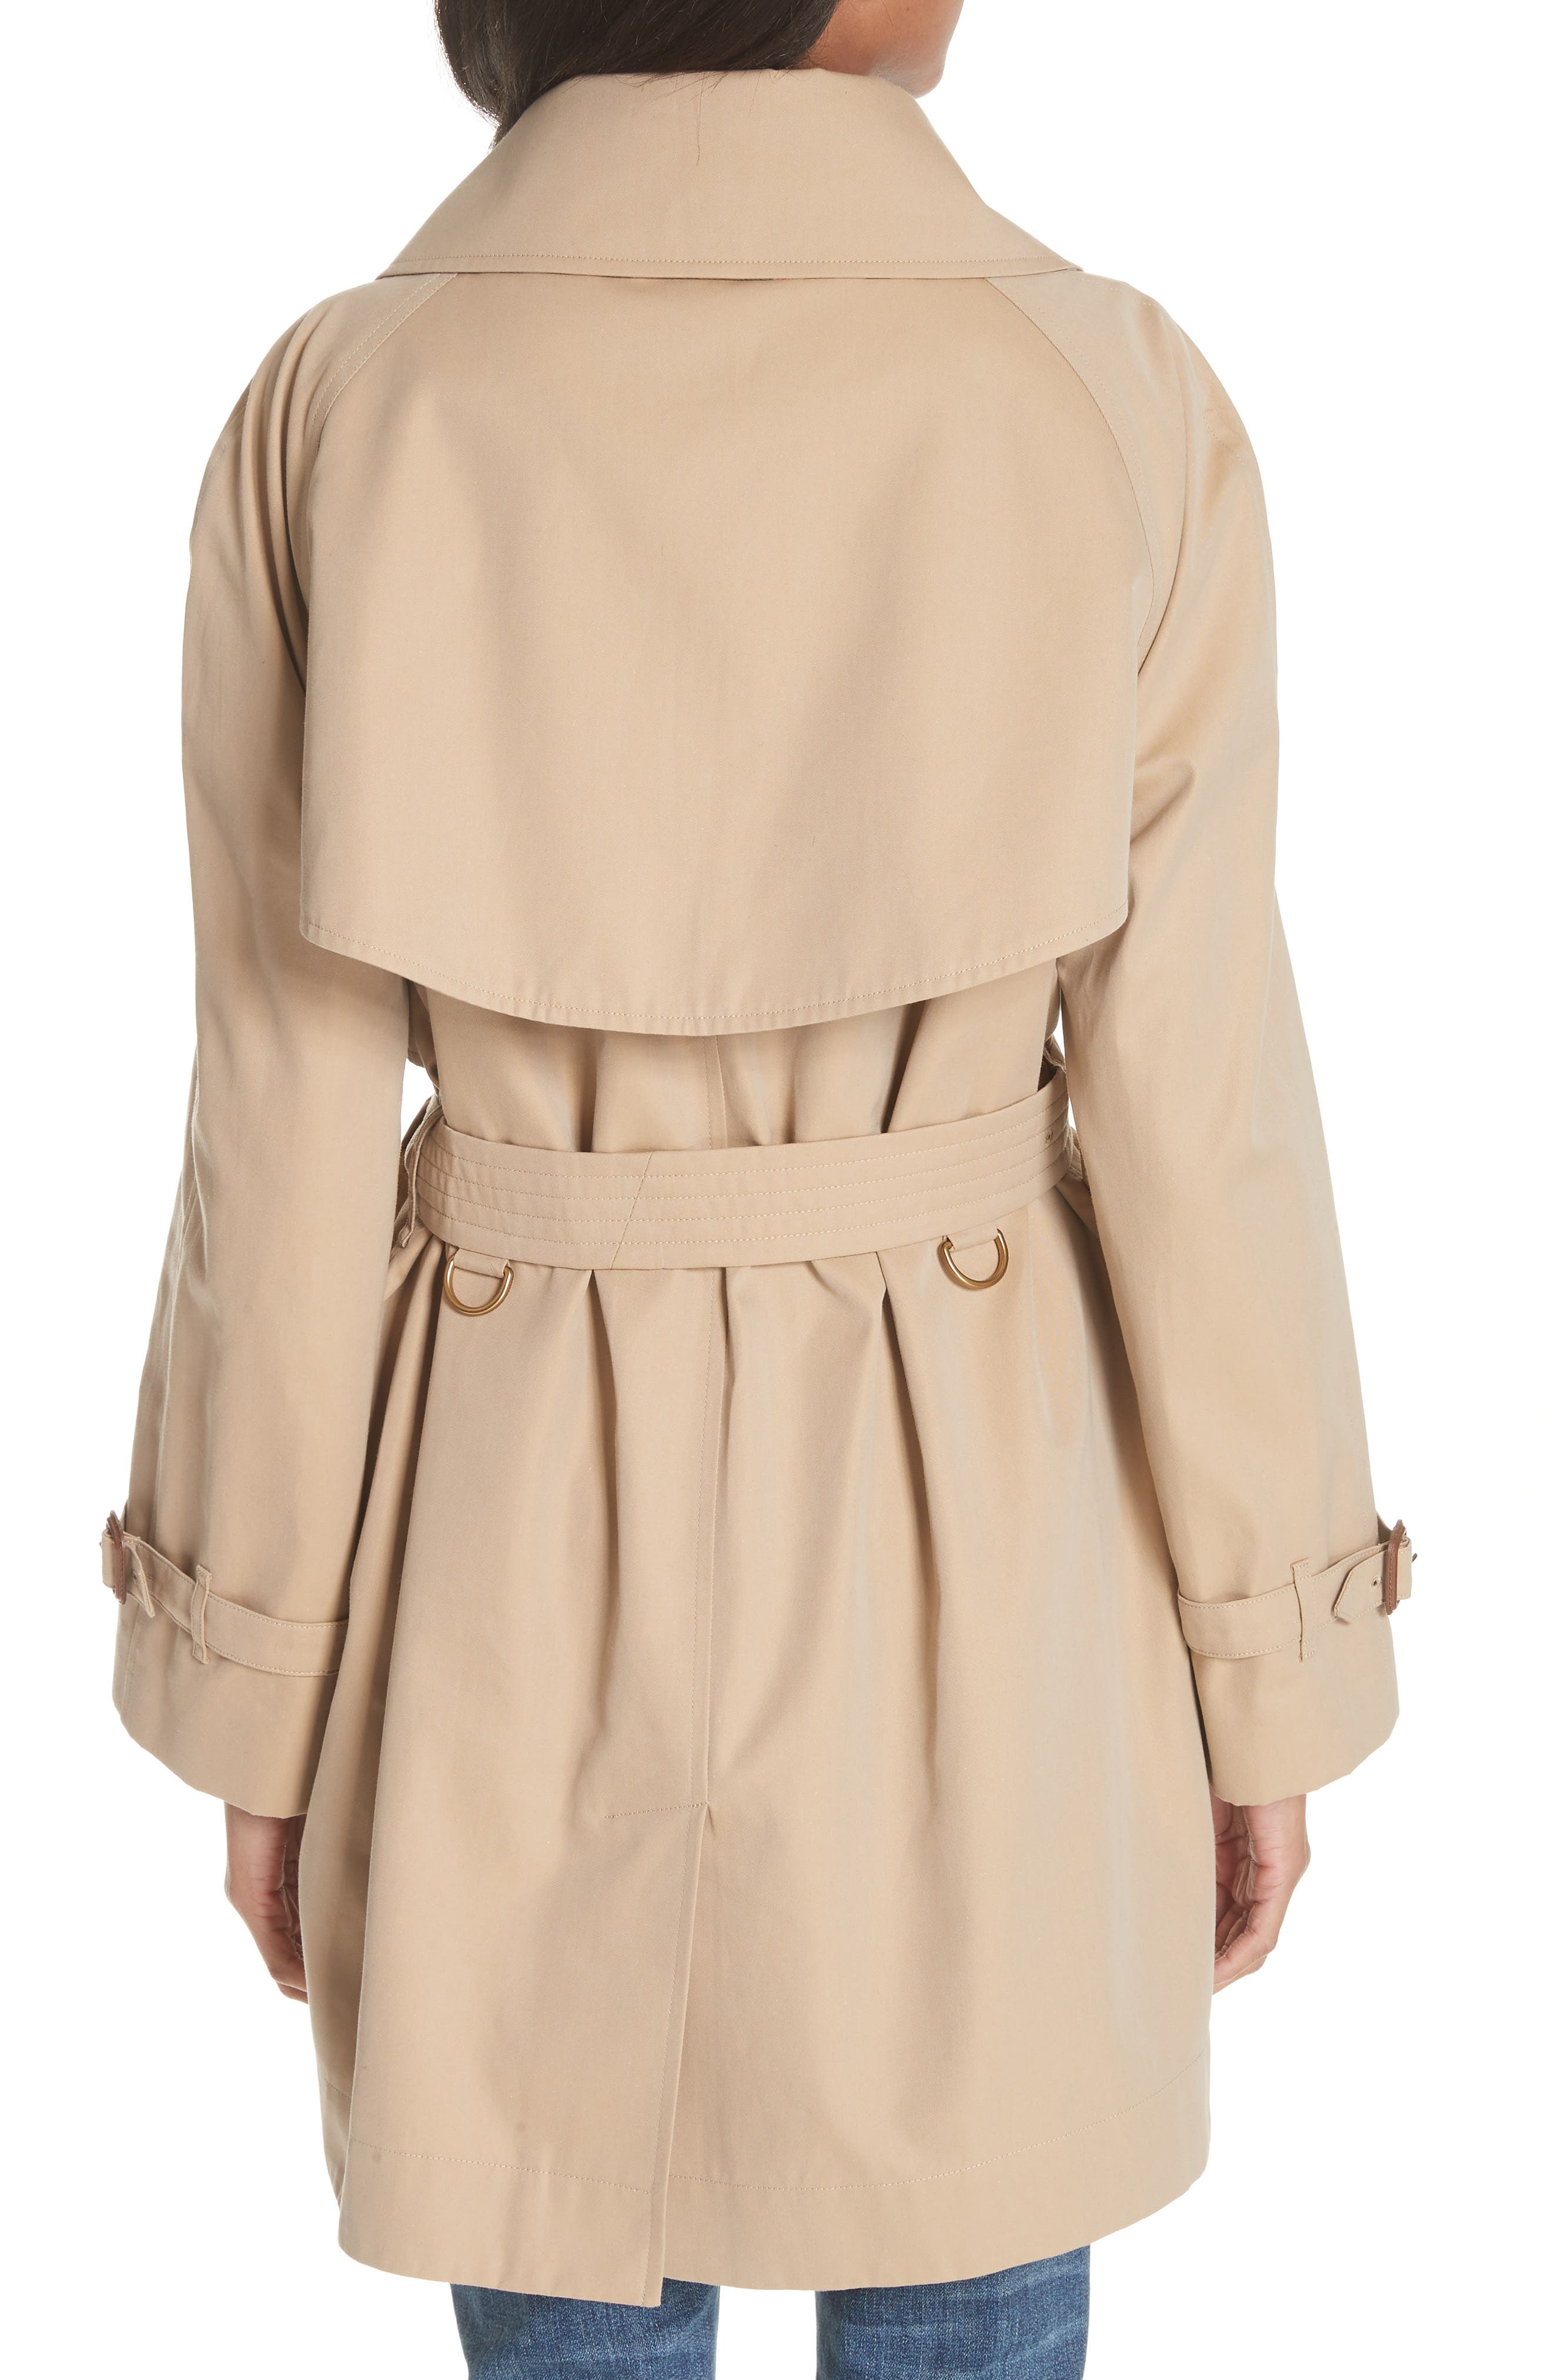 Fortingall Cotton Gabardine Trench Coat,                             Alternate thumbnail 2, color,                             255